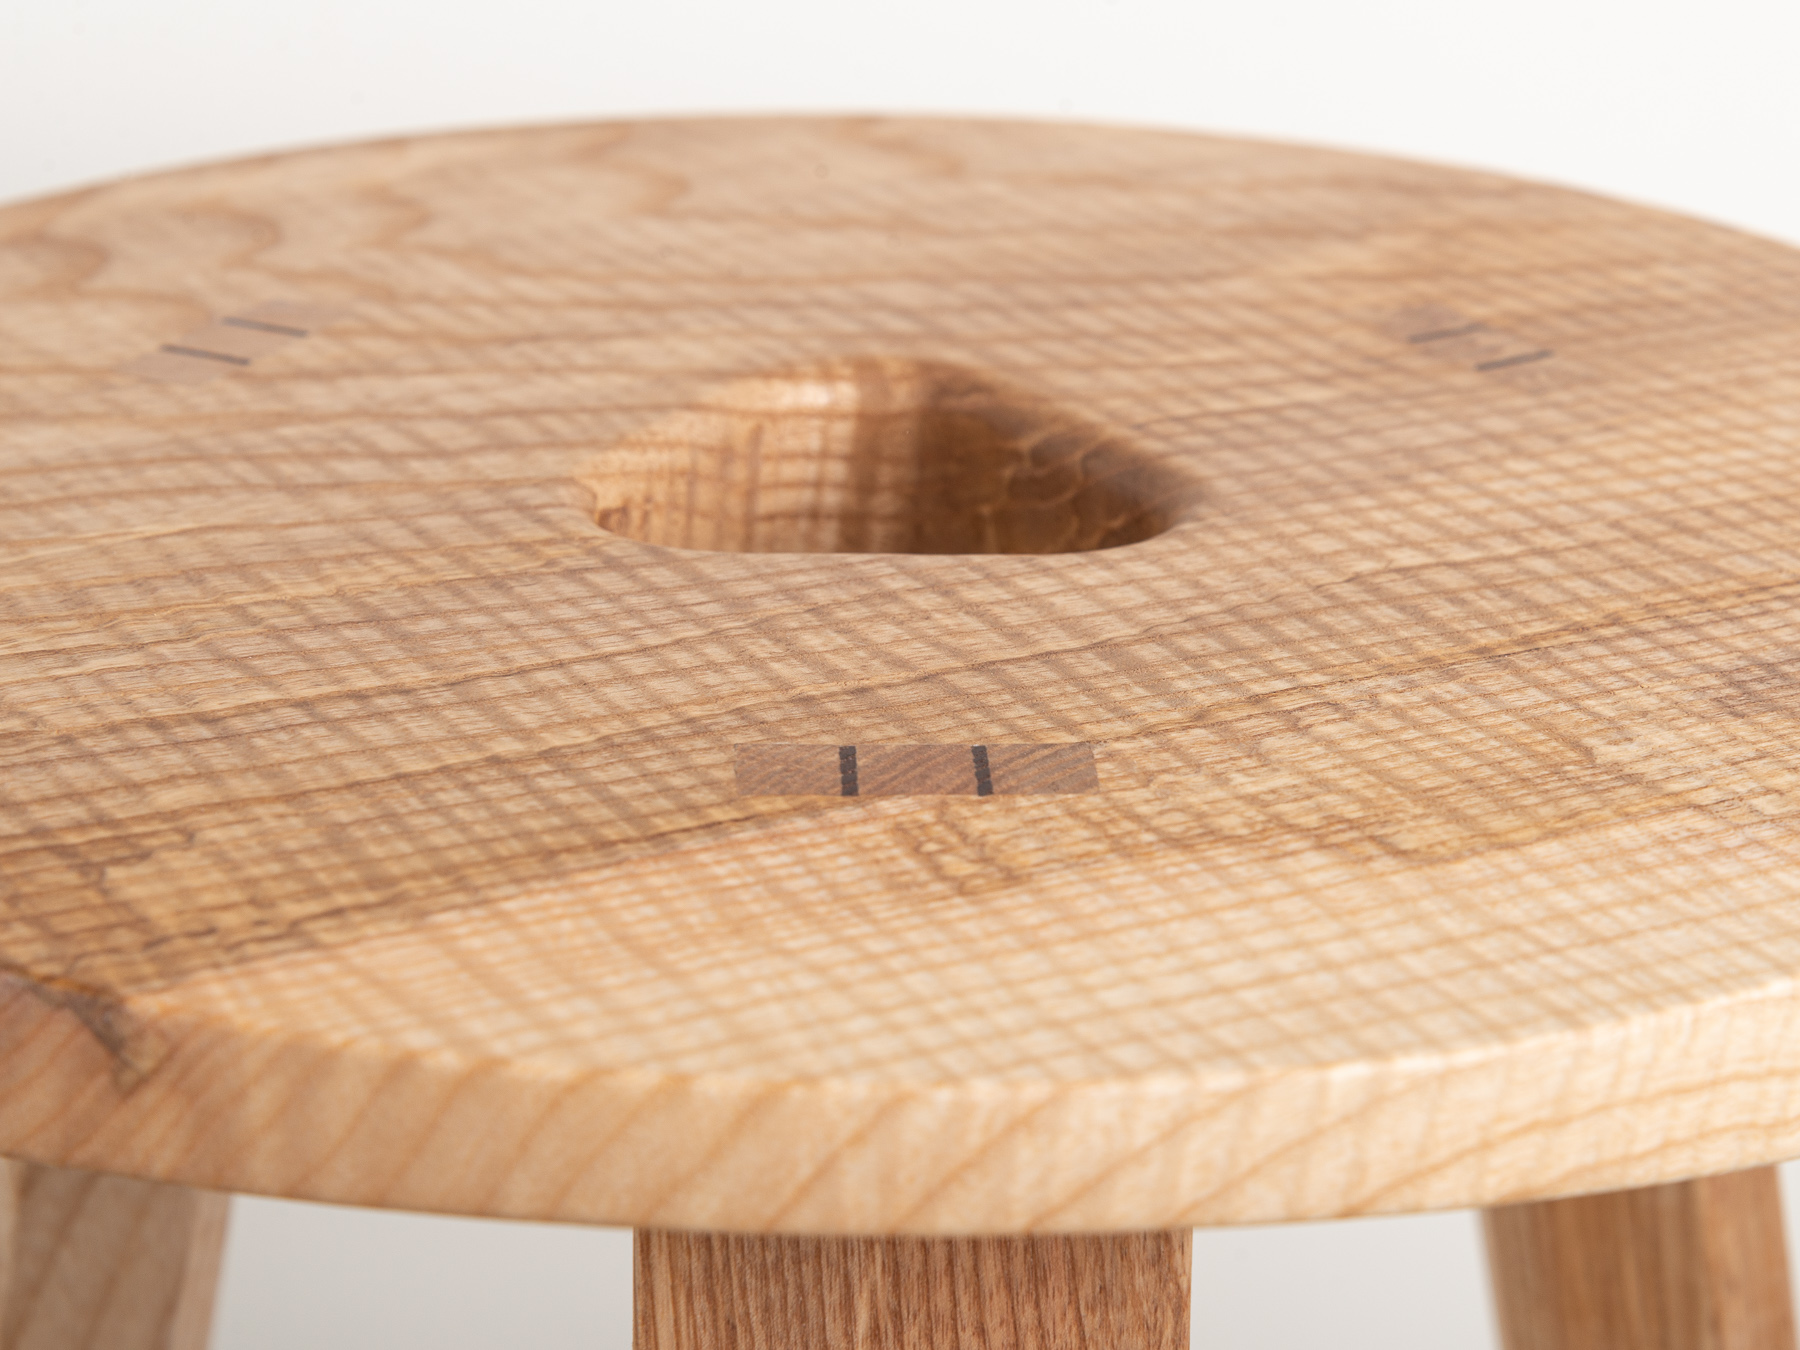 Jan Hendzel Studio Bowater new collection english baked ash sycamore stool shop-4